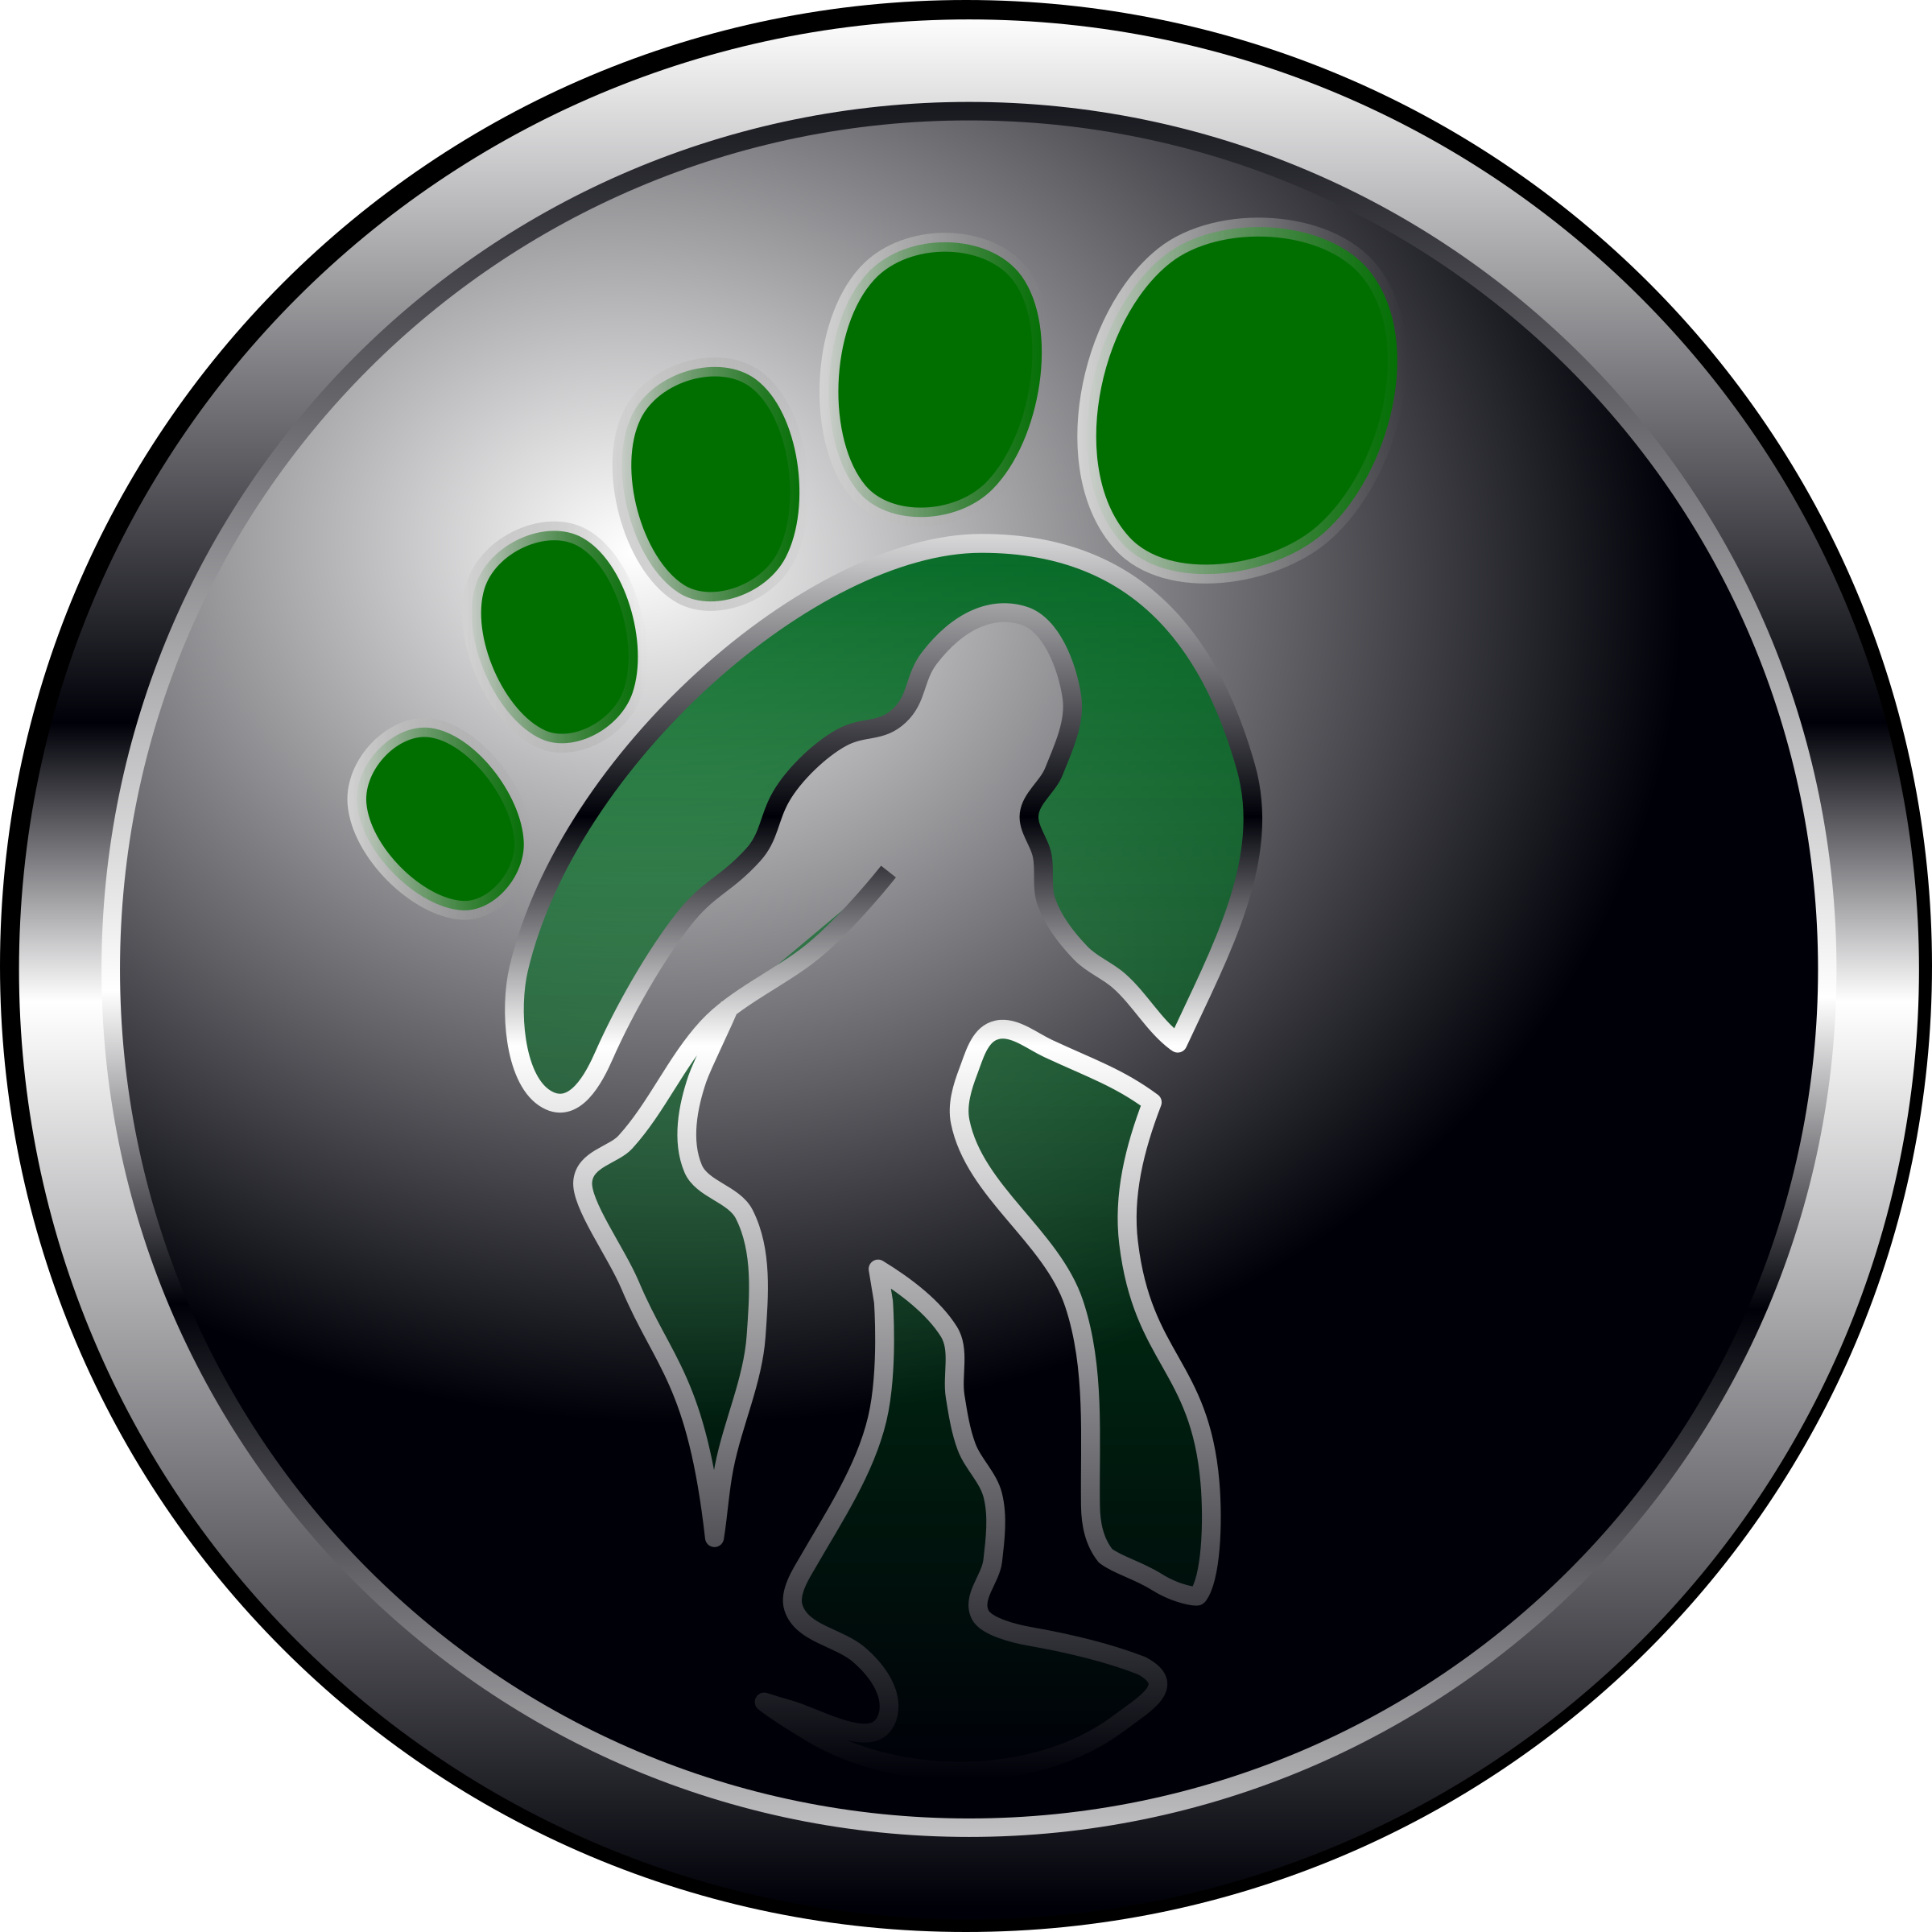 Foot clipart bigfoot. Button icons png free